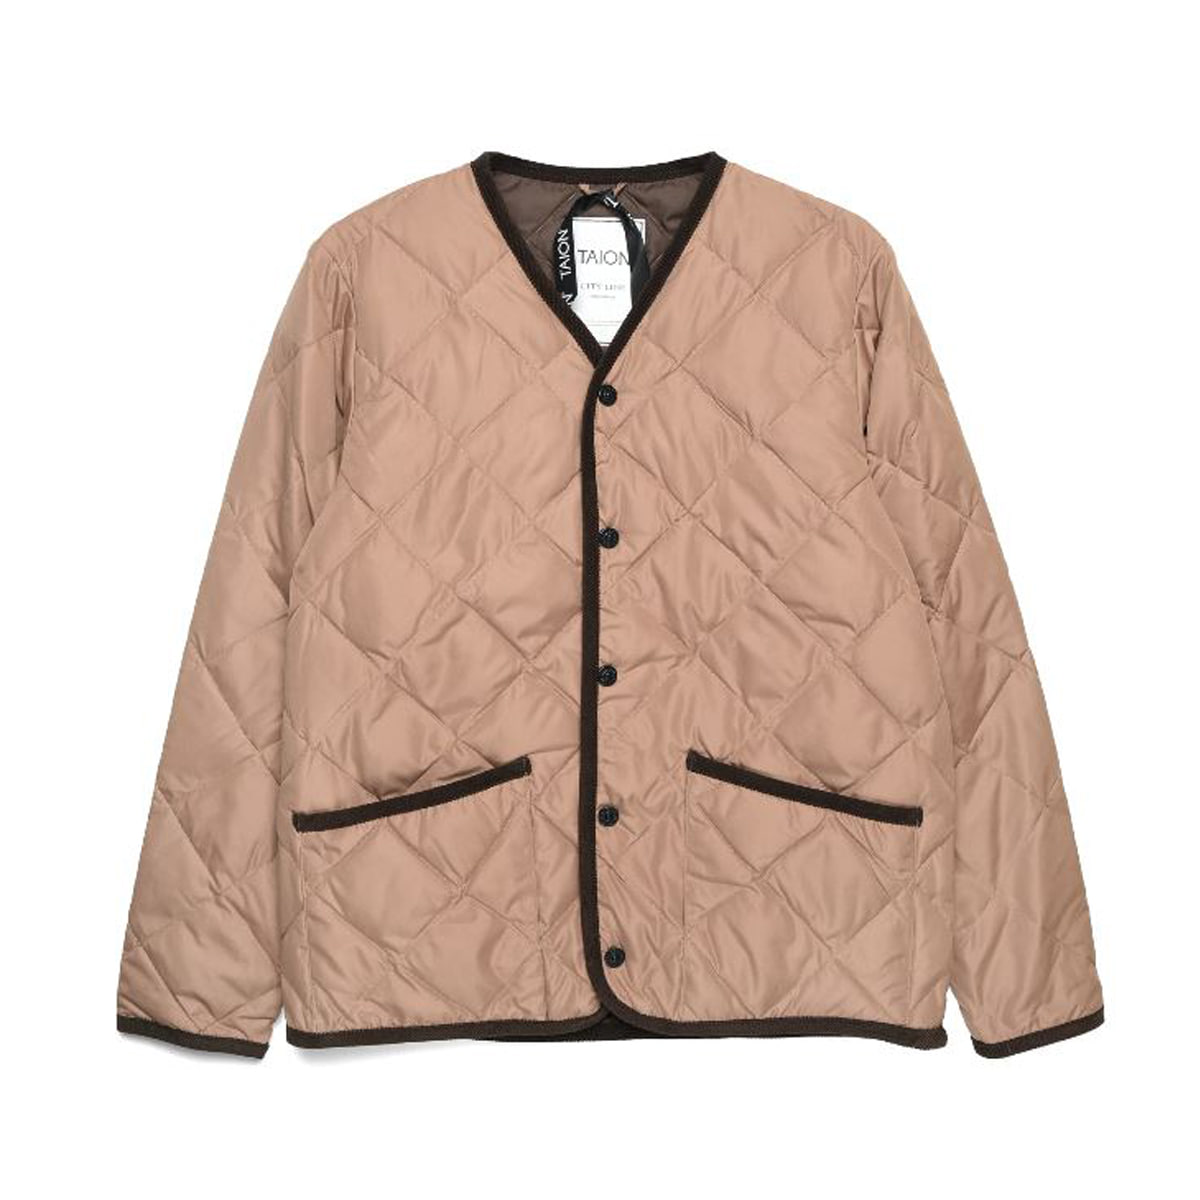 [TAION] PIPING V NECK DOWN CARDIGAN (TAION-101CI) 'BEIGE'